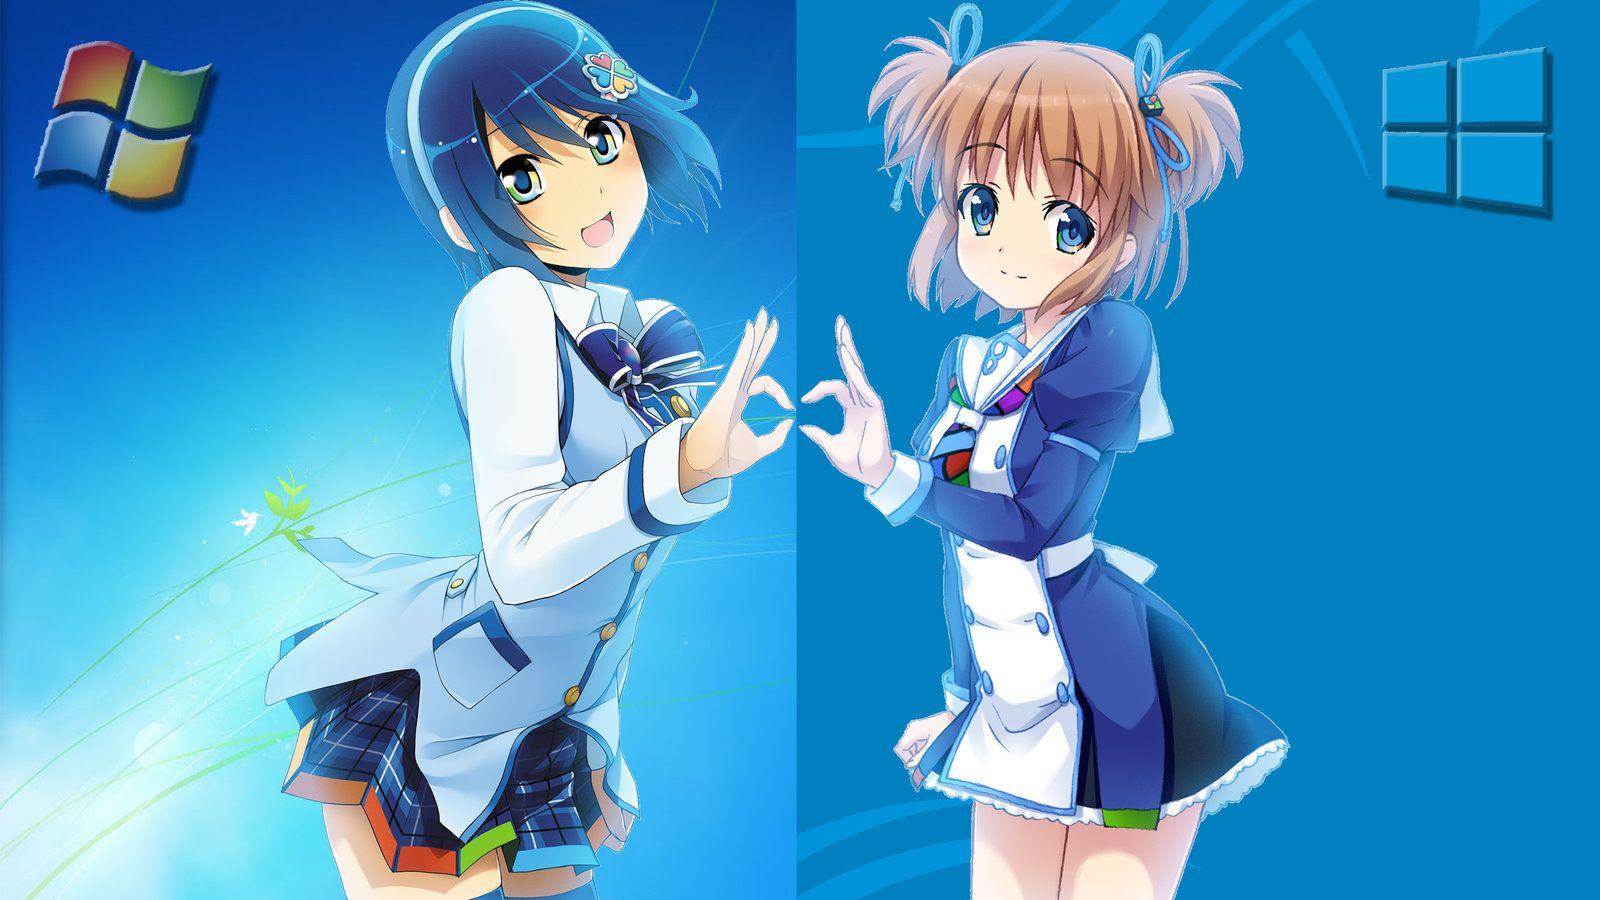 Nanami And Yuu Madobes Together As The Launch Of Windows 8 Happened Just After Windows 7 Got Strong Creator Un Anime Desktop Wallpaper Art Background Images Anime wallpaper for laptop windows 8